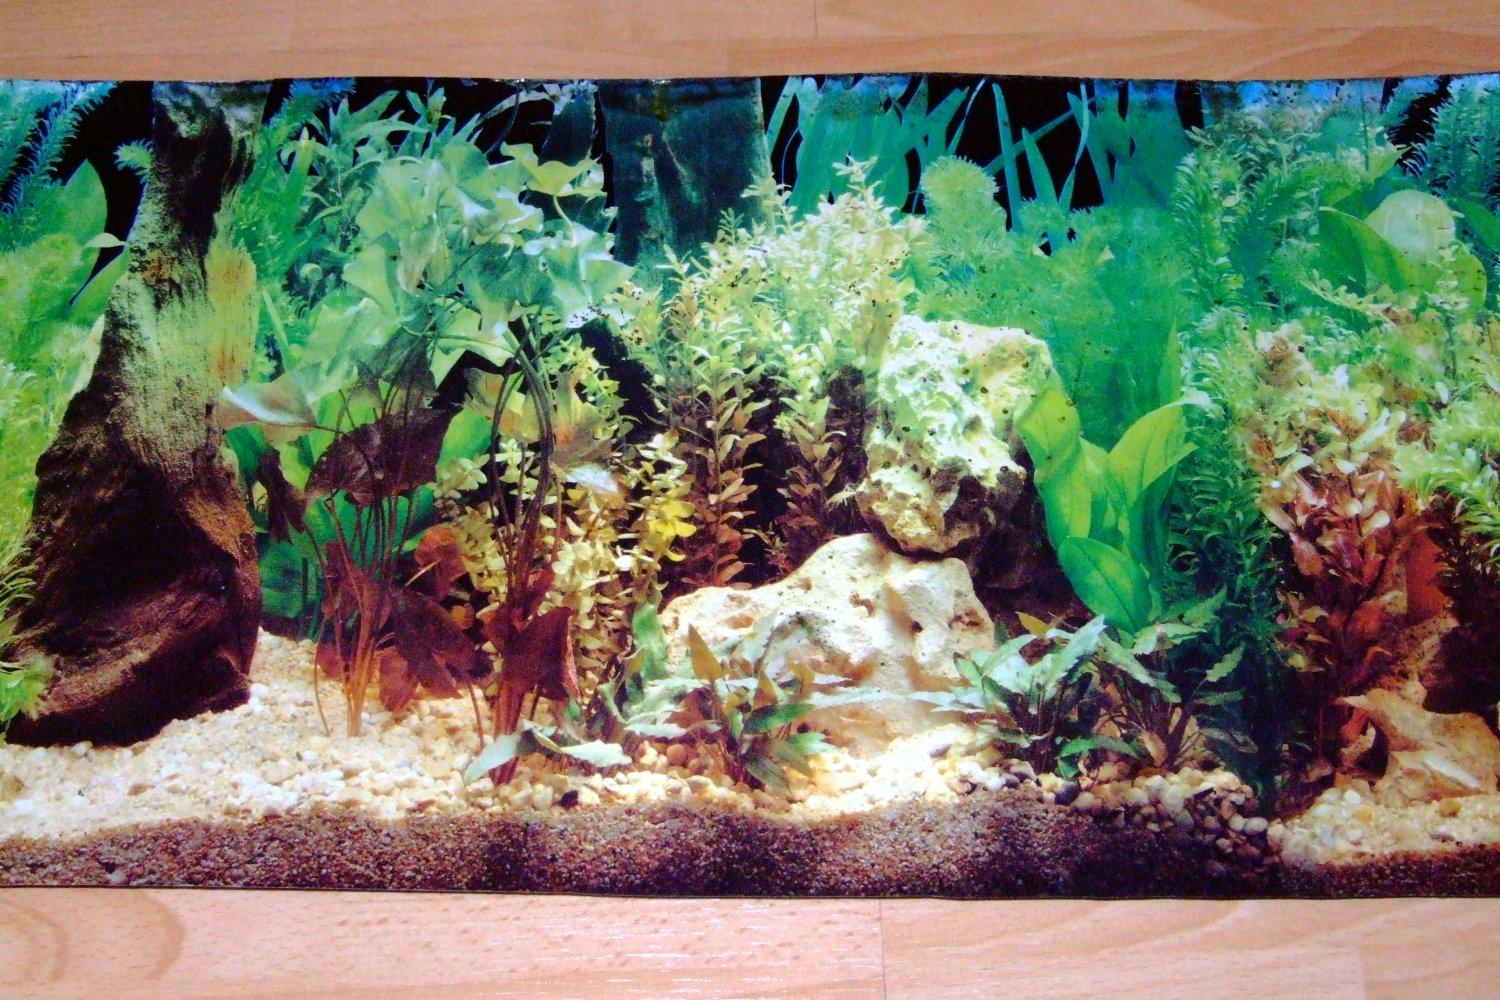 Aquarium Background Scenes Background Desktops Pics